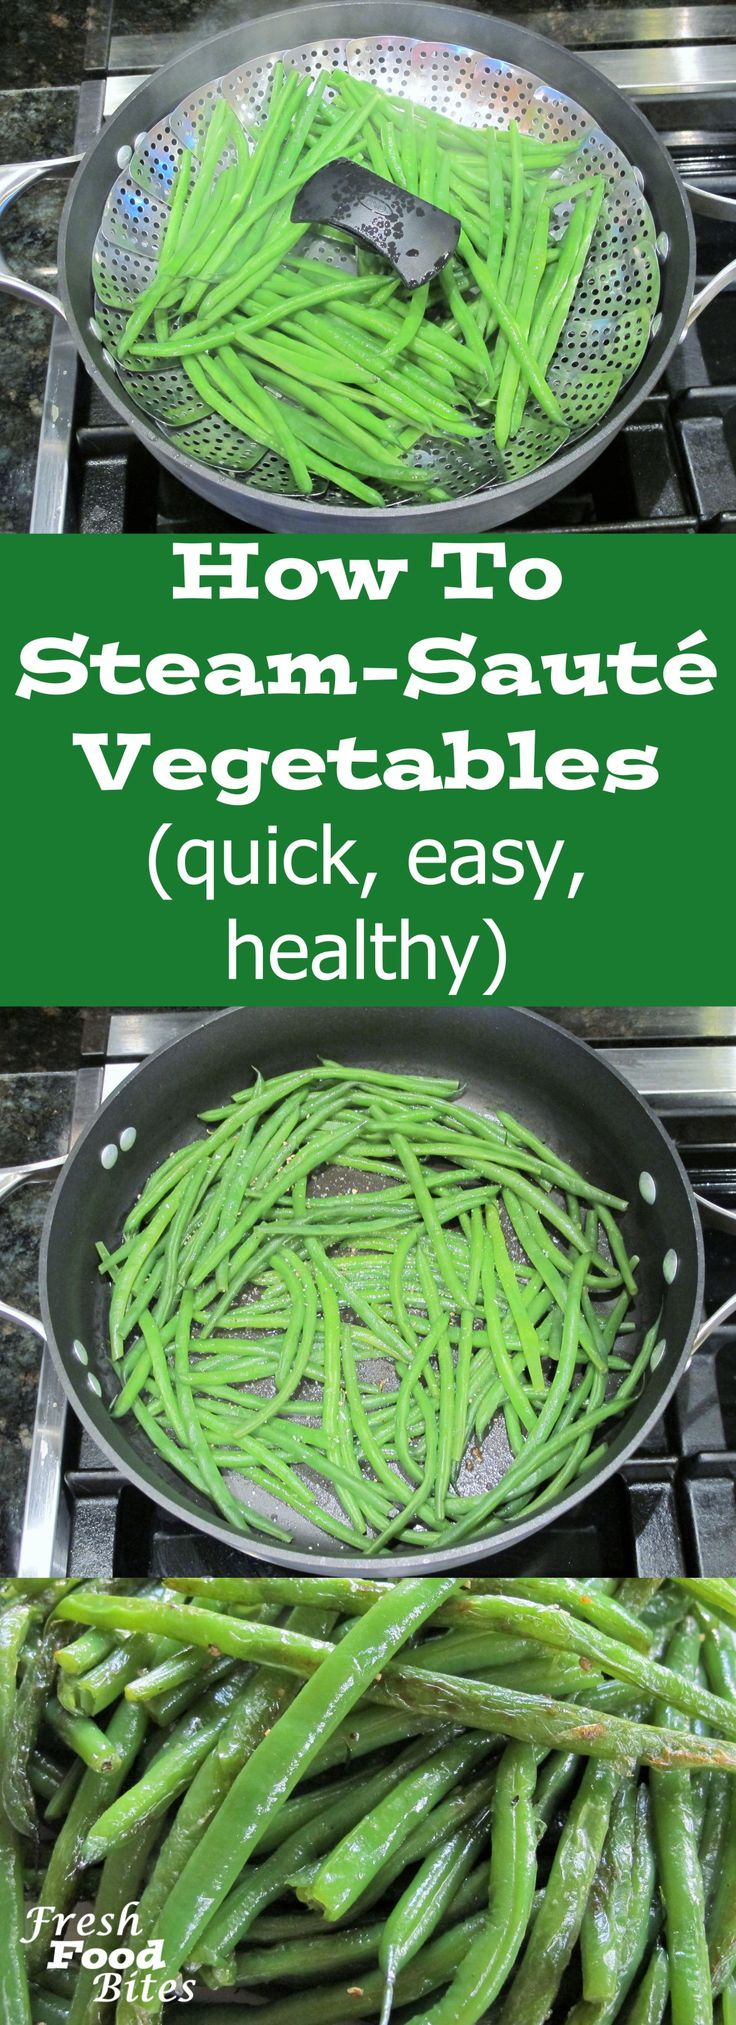 Learn how to steam-sauté vegetables for a simple, quick way to make more flavorful veggies that retain more of the nutrients they contain. You'll make plain vegetables a star at the table rather than just an afterthought by cooking them this way. With very little work on your part, vegetables will taste so good your family will want to eat them!